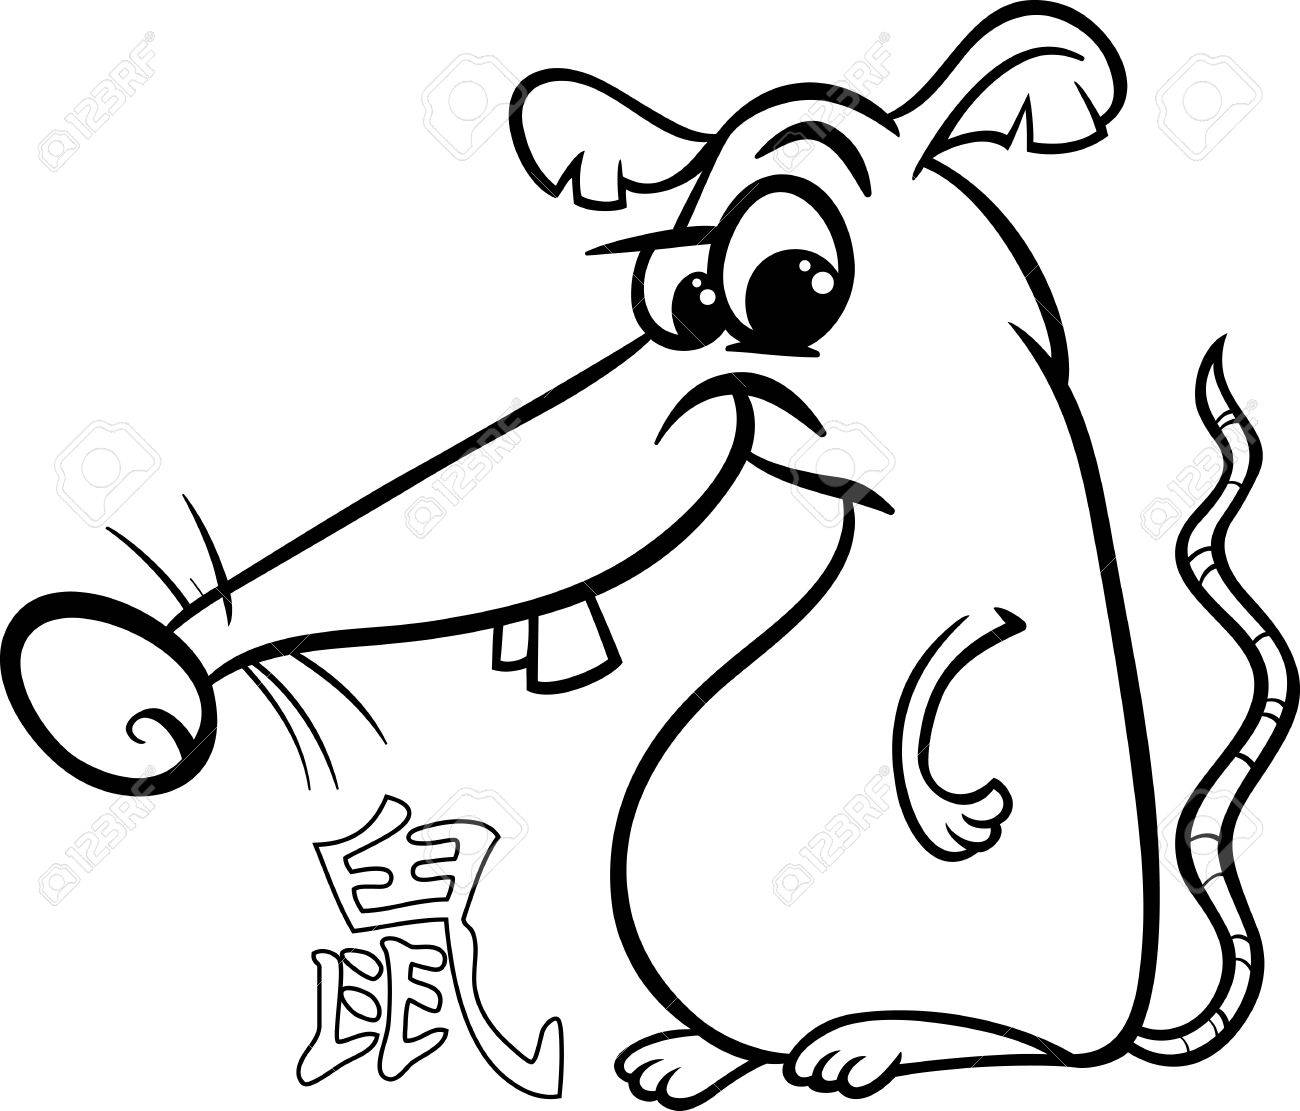 1300x1111 Black And White Cartoon Illustration Of Rat Chinese Horoscope